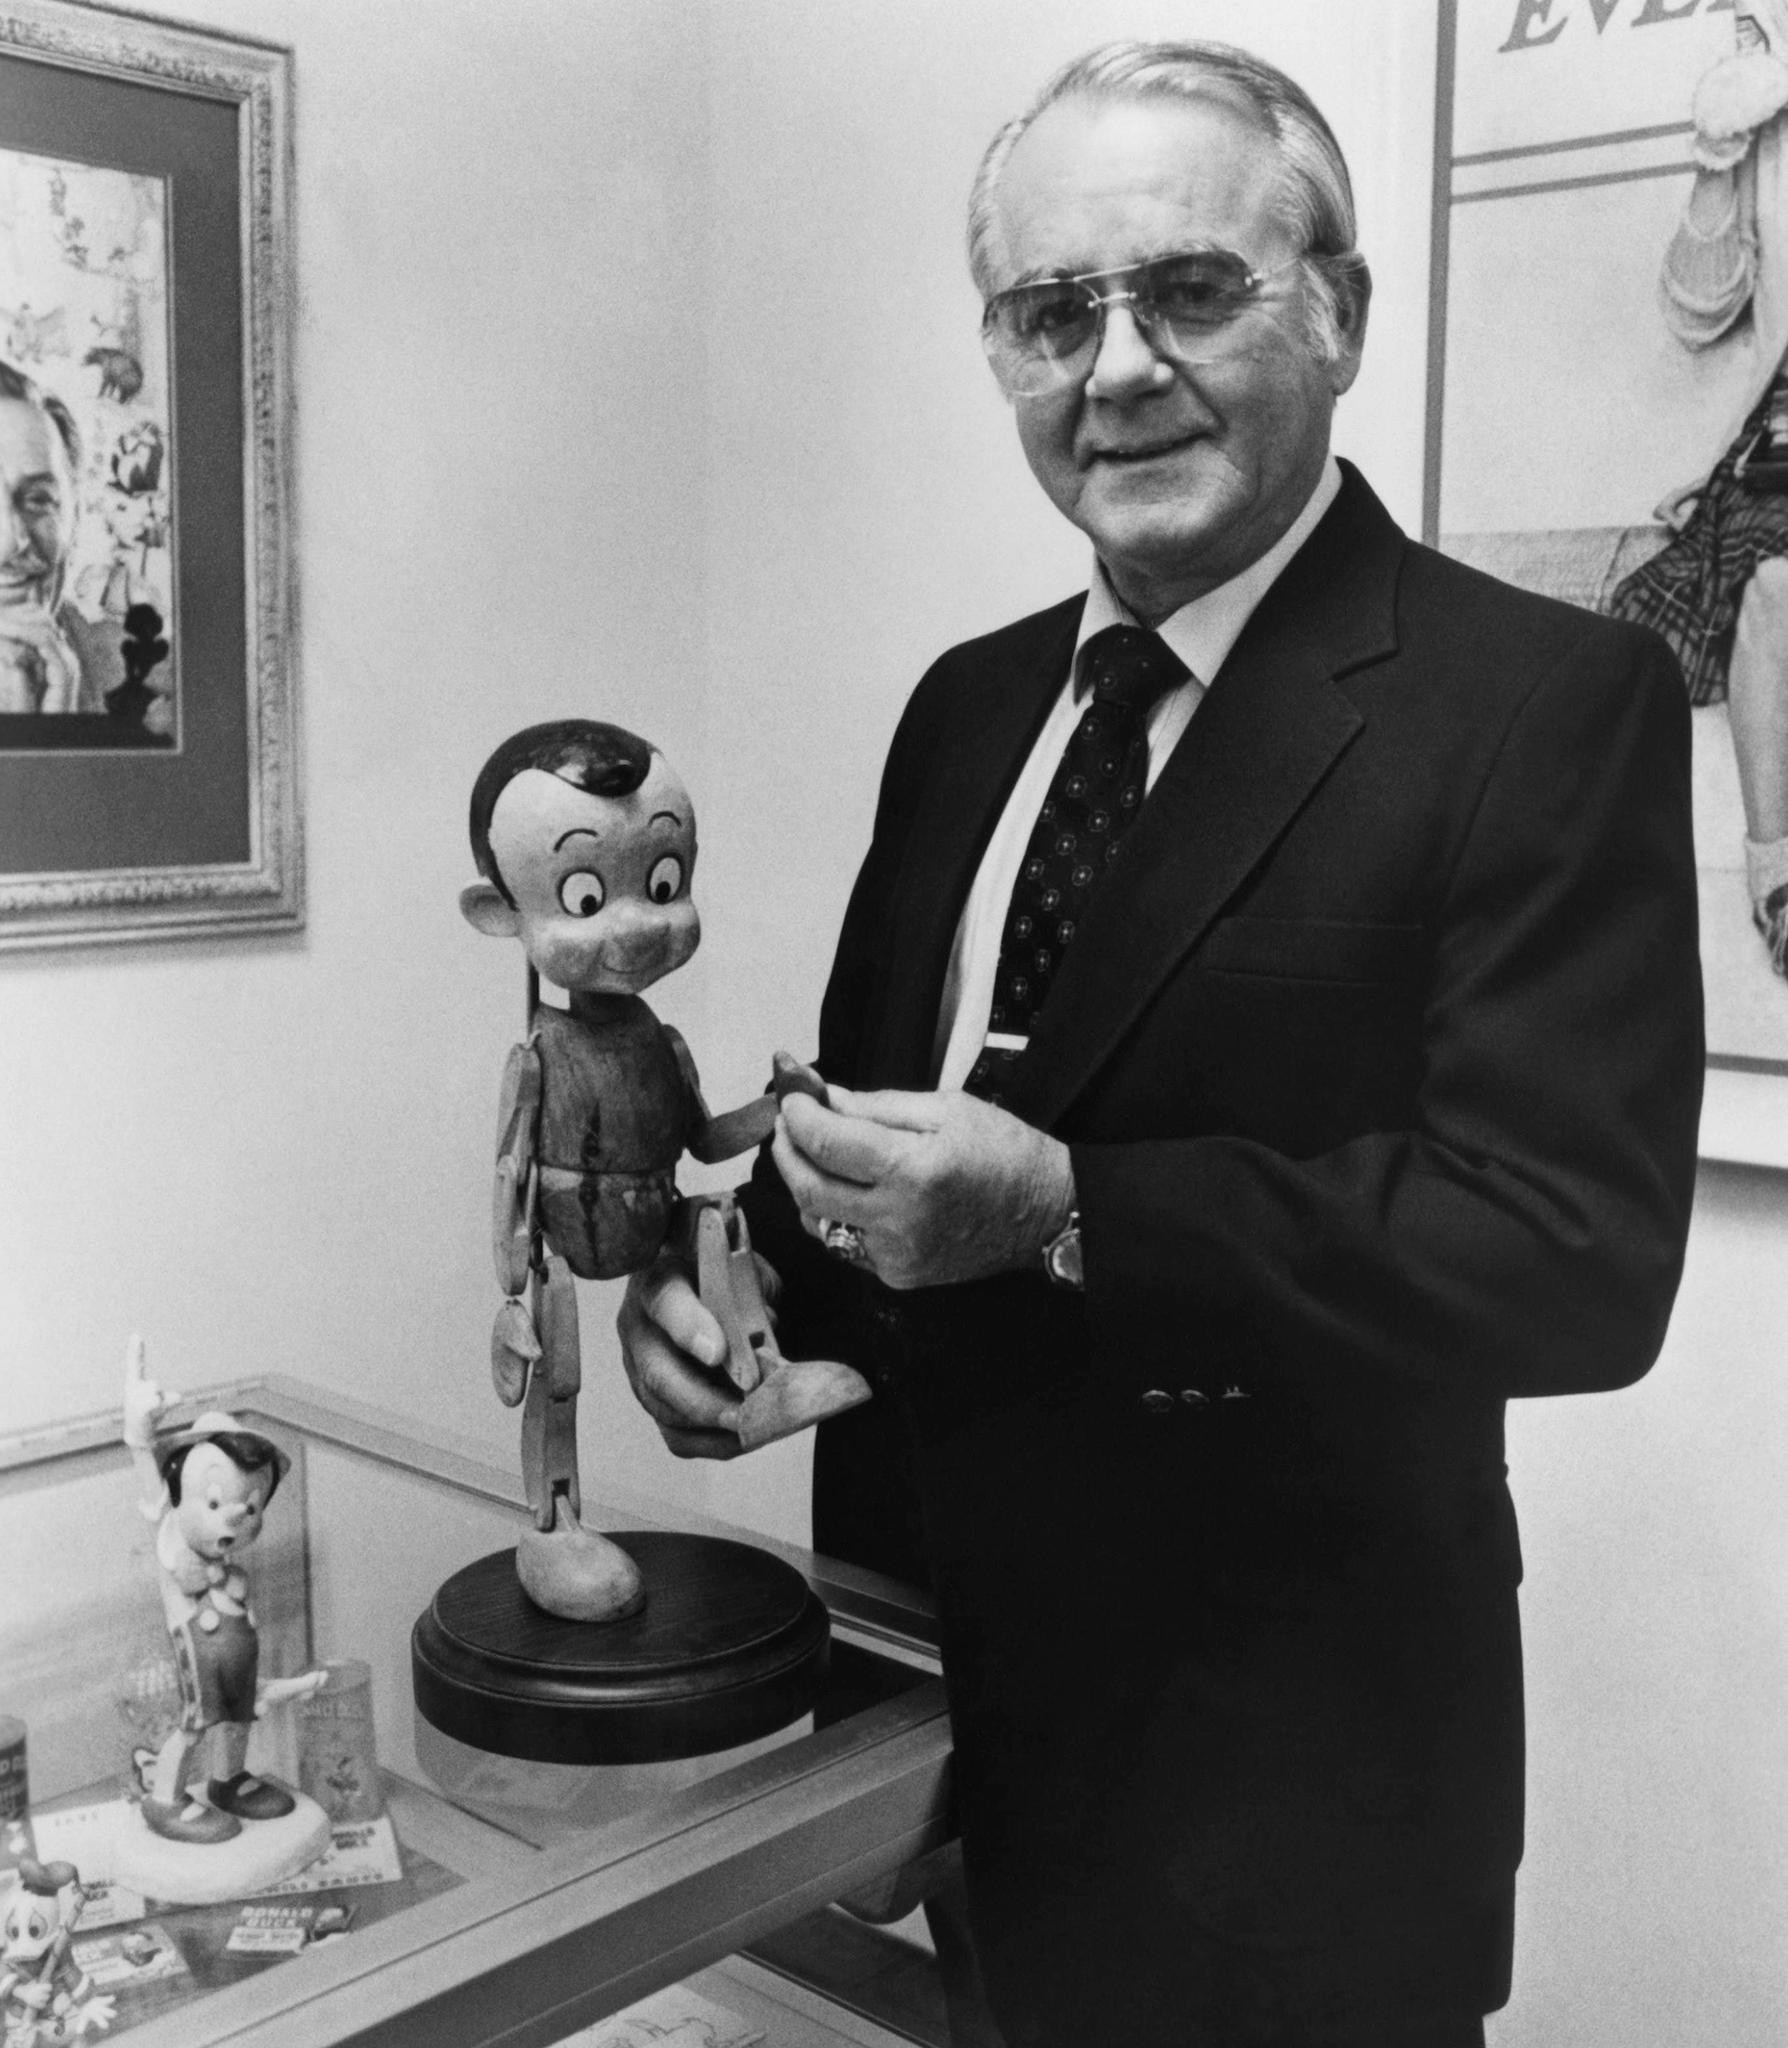 Richard Percy Jones, Voice of Pinocchio, Dies at 87